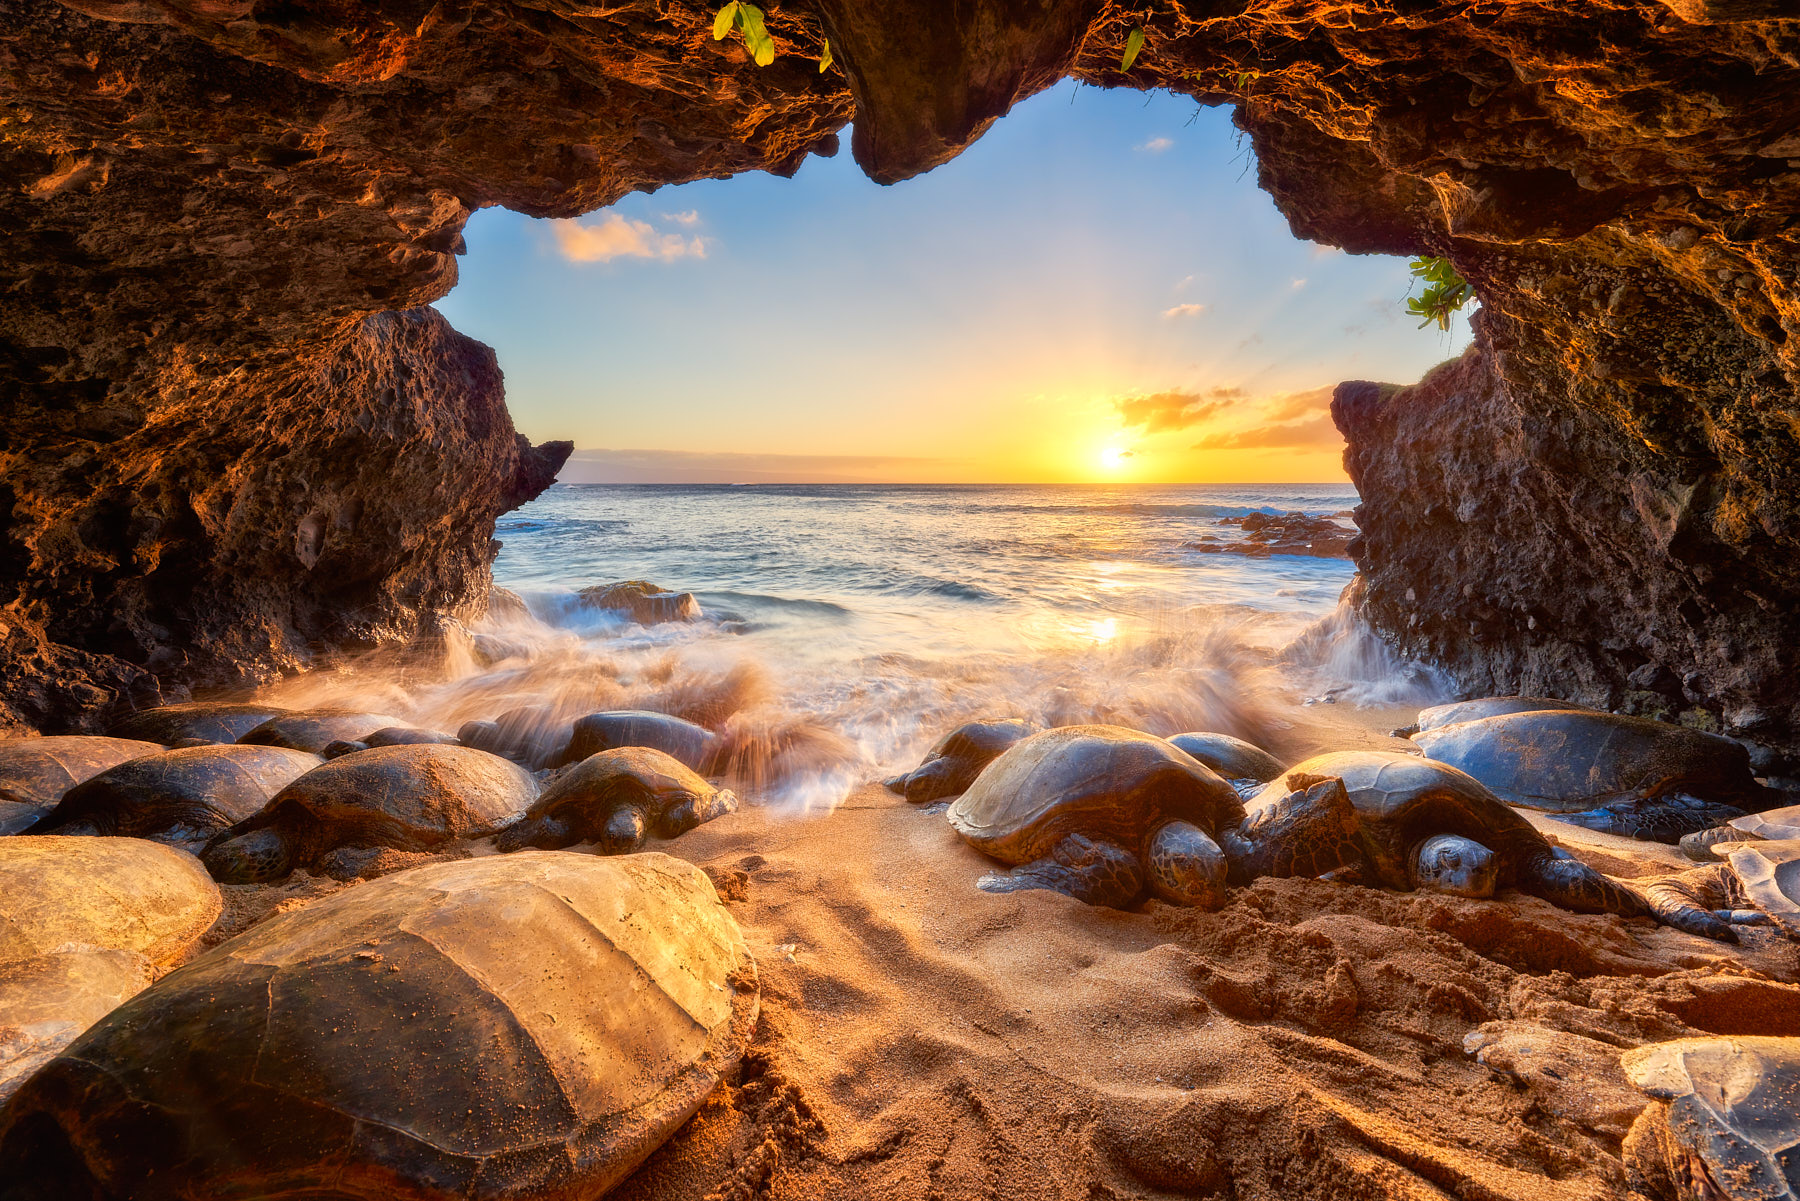 a sea cave packed with Honu (Hawaiian Green Sea Turtles) at sunset and incoming waves coming over the turtles on the island of Maui.  Photo by Andrew Shoemaker